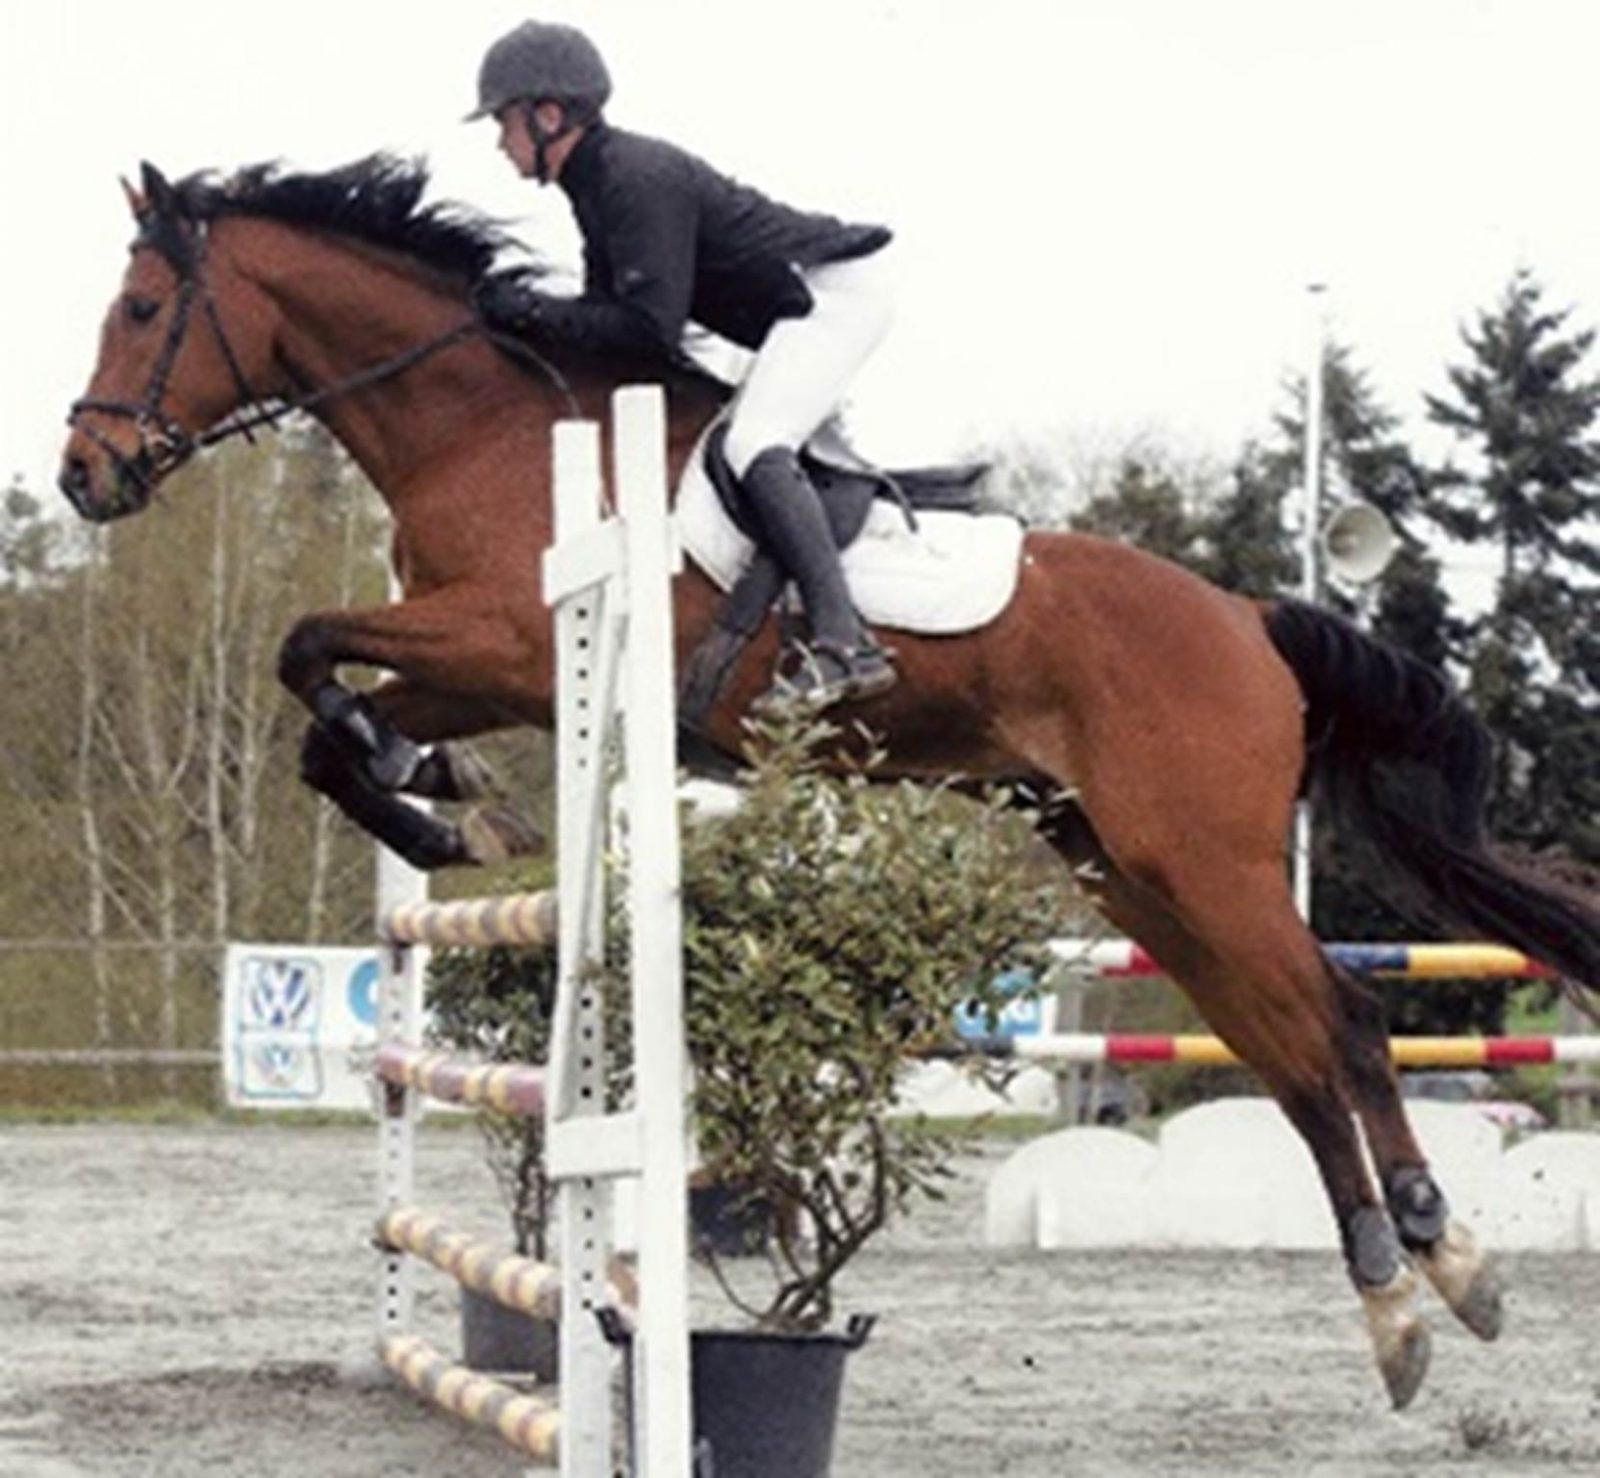 Photo saut d'obstacle – Haras du Cosquer